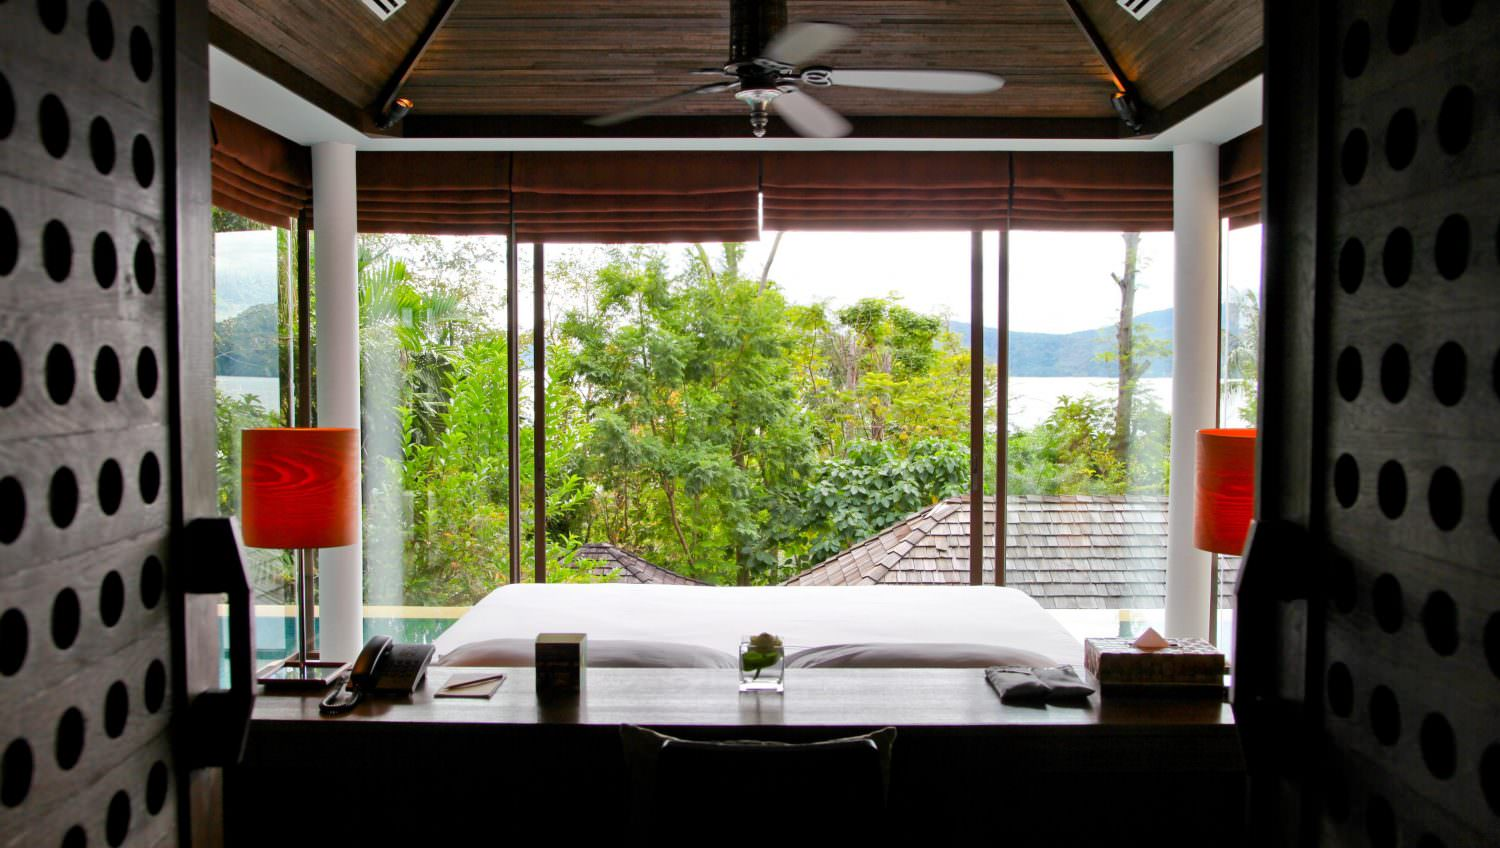 2-One-Bedroom-Pool-Villa-Garden-View-Sri-Panwa-Hotel-Phuket-Resort-Spa